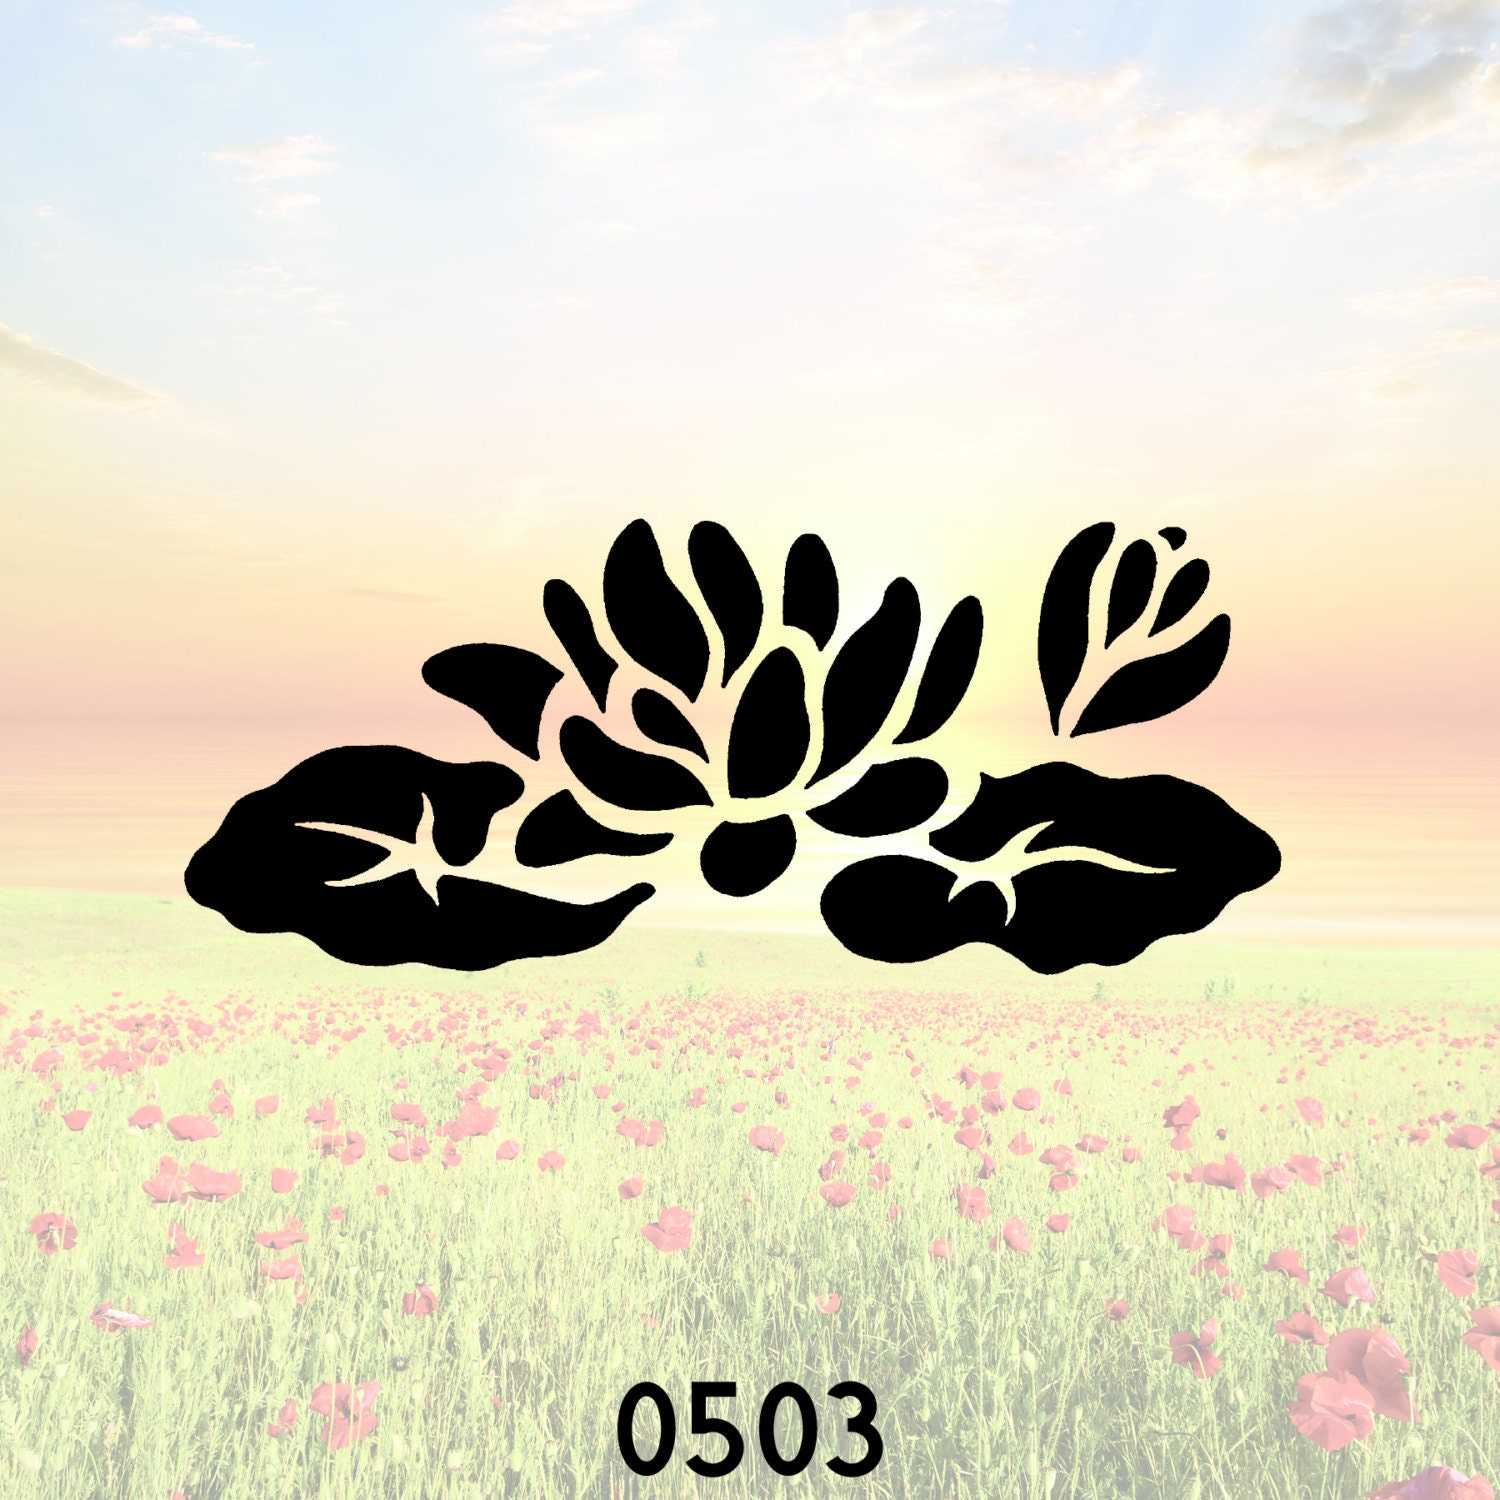 Water Lily Stencil Black And White: Flower Water Lily Stencil Or Wall Decal DIY Project